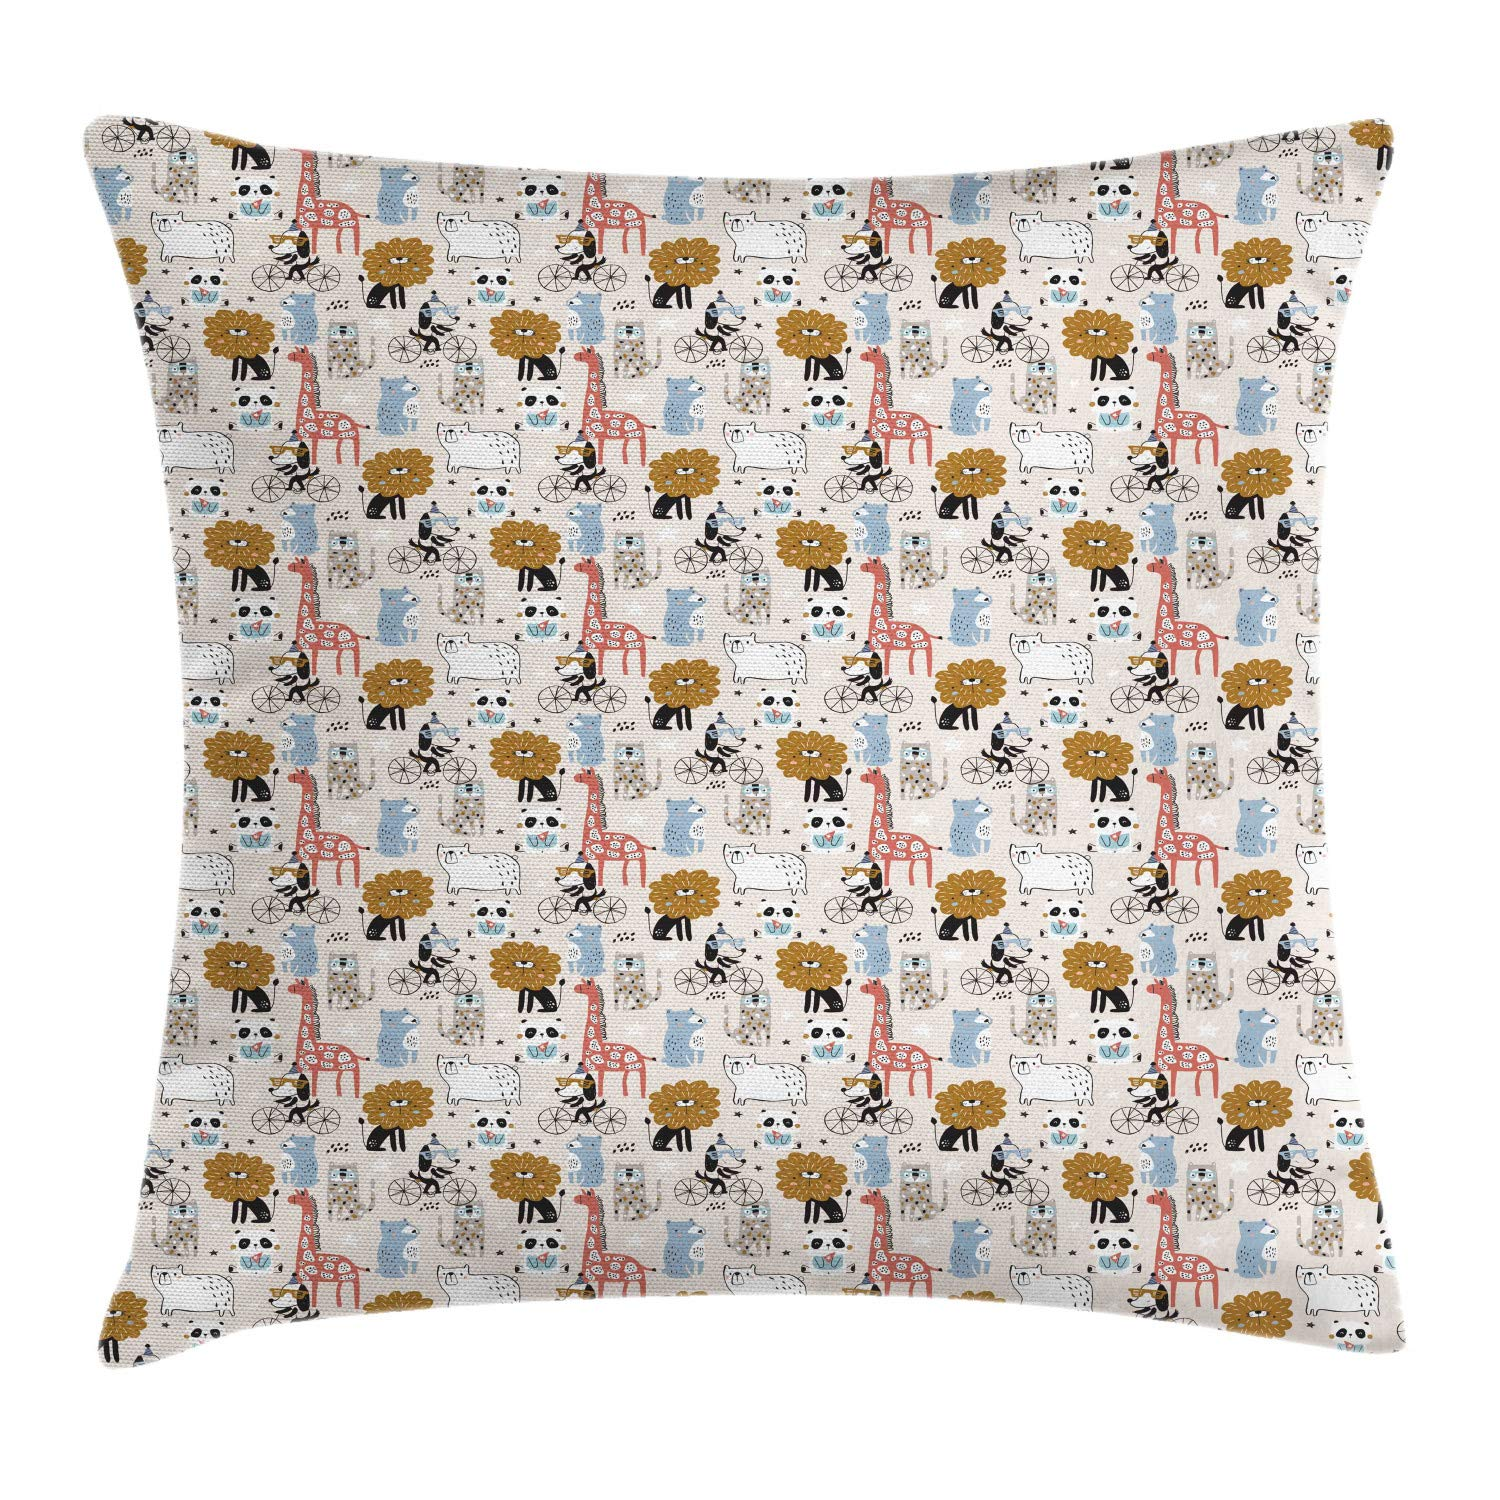 Lunarable Doodle Throw Pillow Cushion Cover, Nursery Repetitive Funny Animals Pattern with Lion Panda Bear Giraffe Dog, Decorative Square Accent Pillow Case, 36'' X 36'', Champagne Multicolor by Lunarable